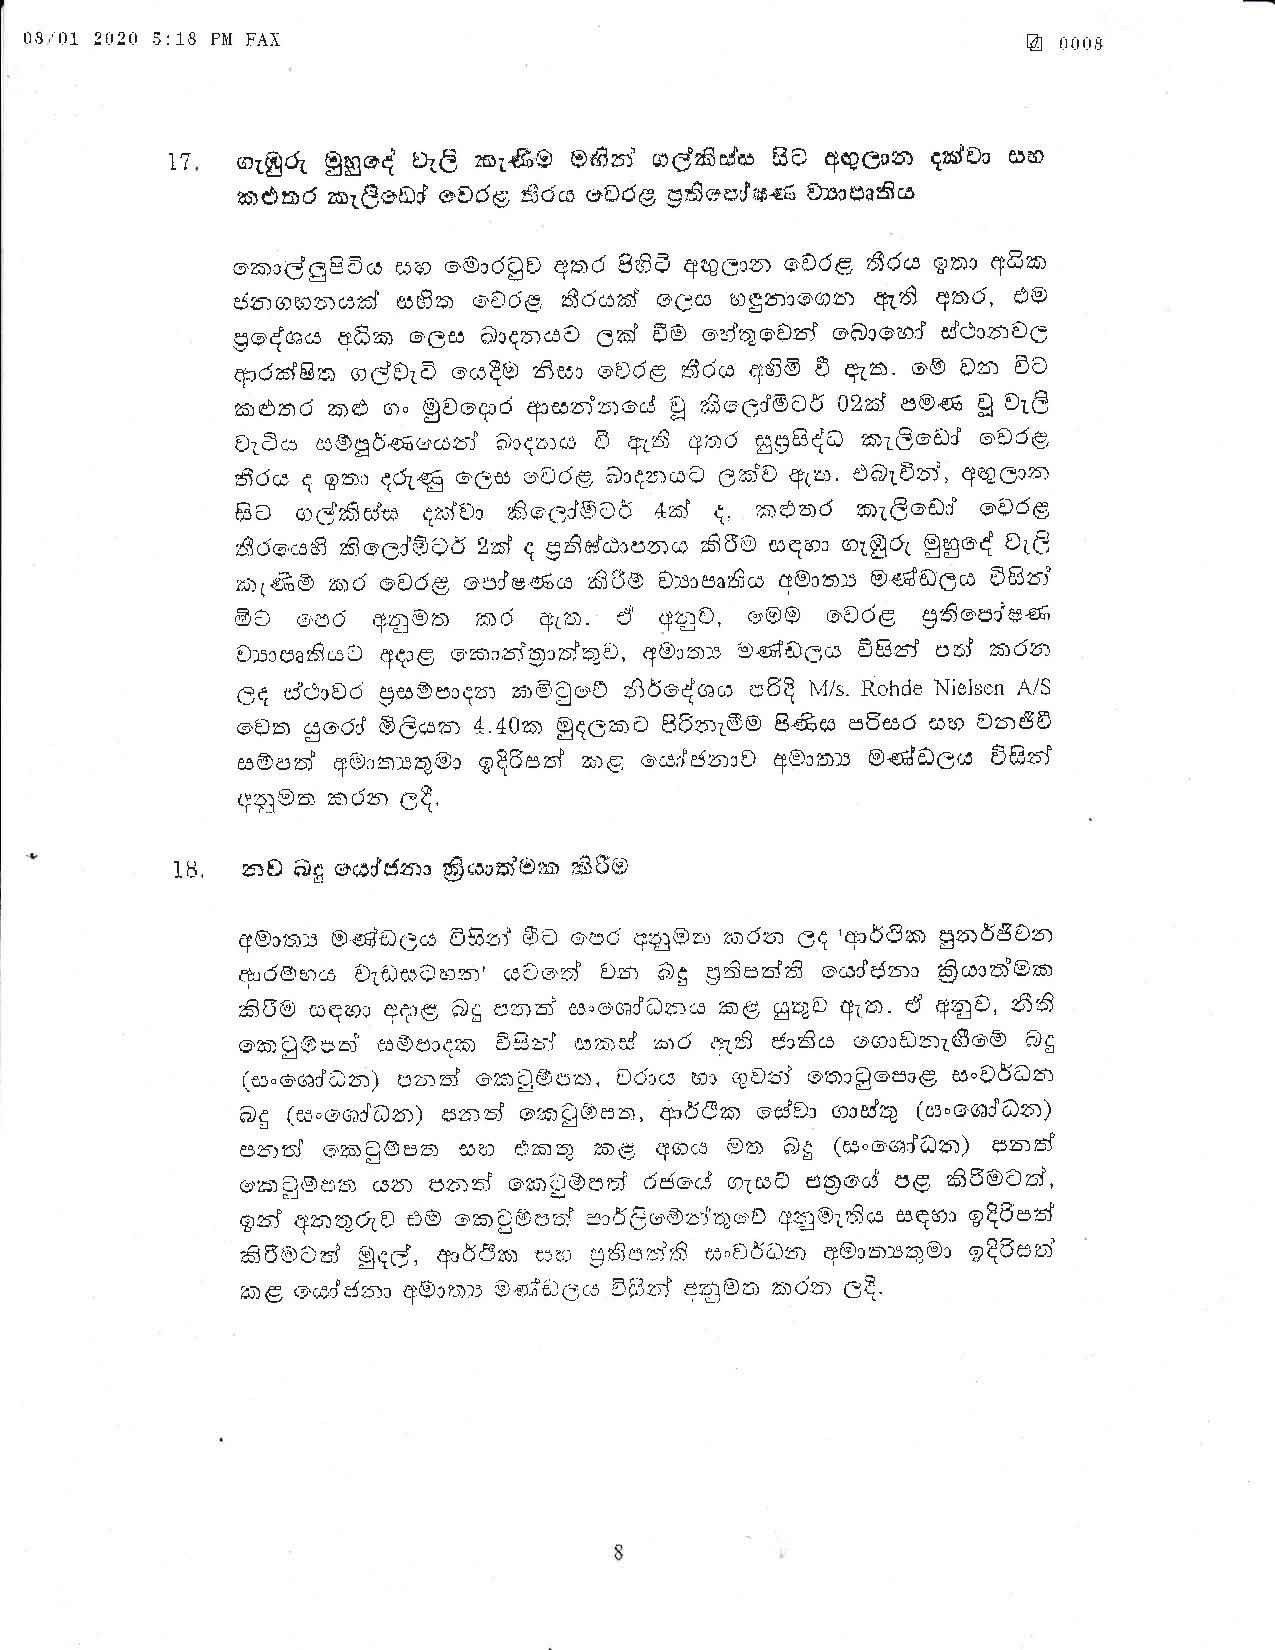 Cabinet Decision on 08.01.2020 page 008